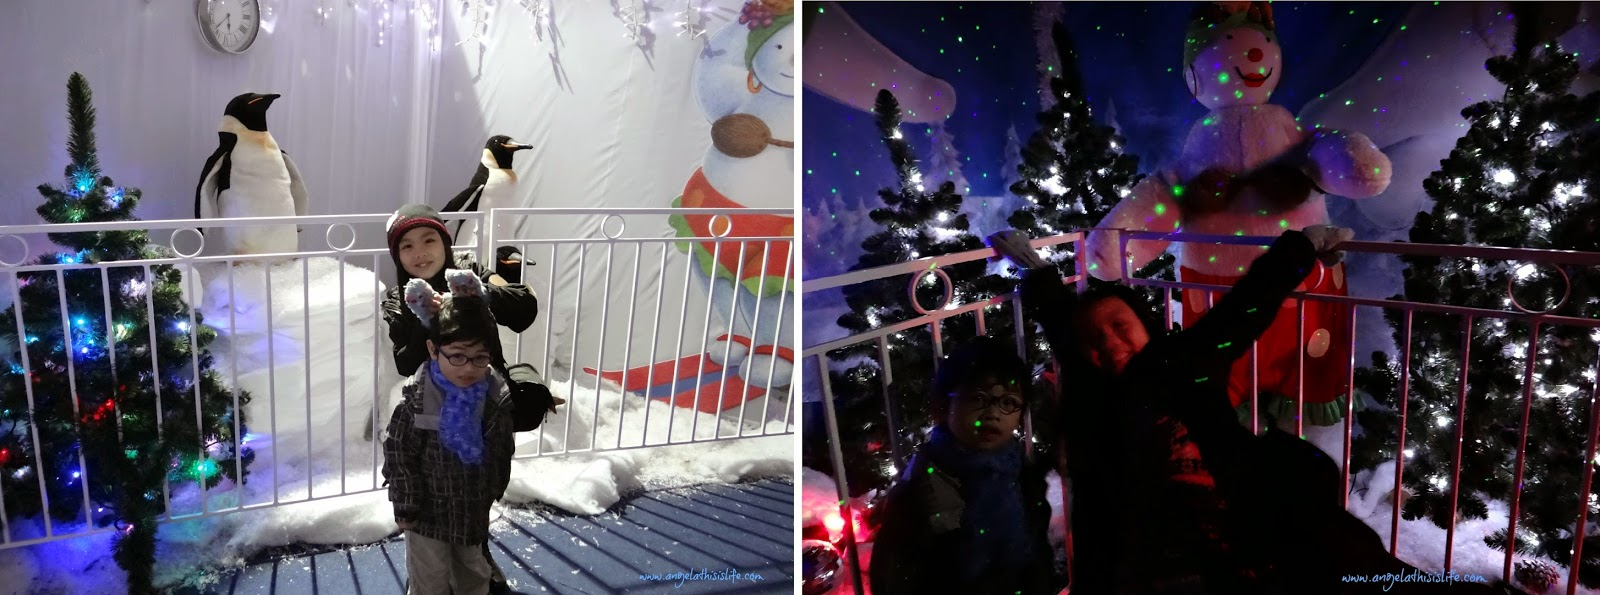 Trafford Centre Santa Grotto 2014, visit Santa, Christmas family day out Manchester